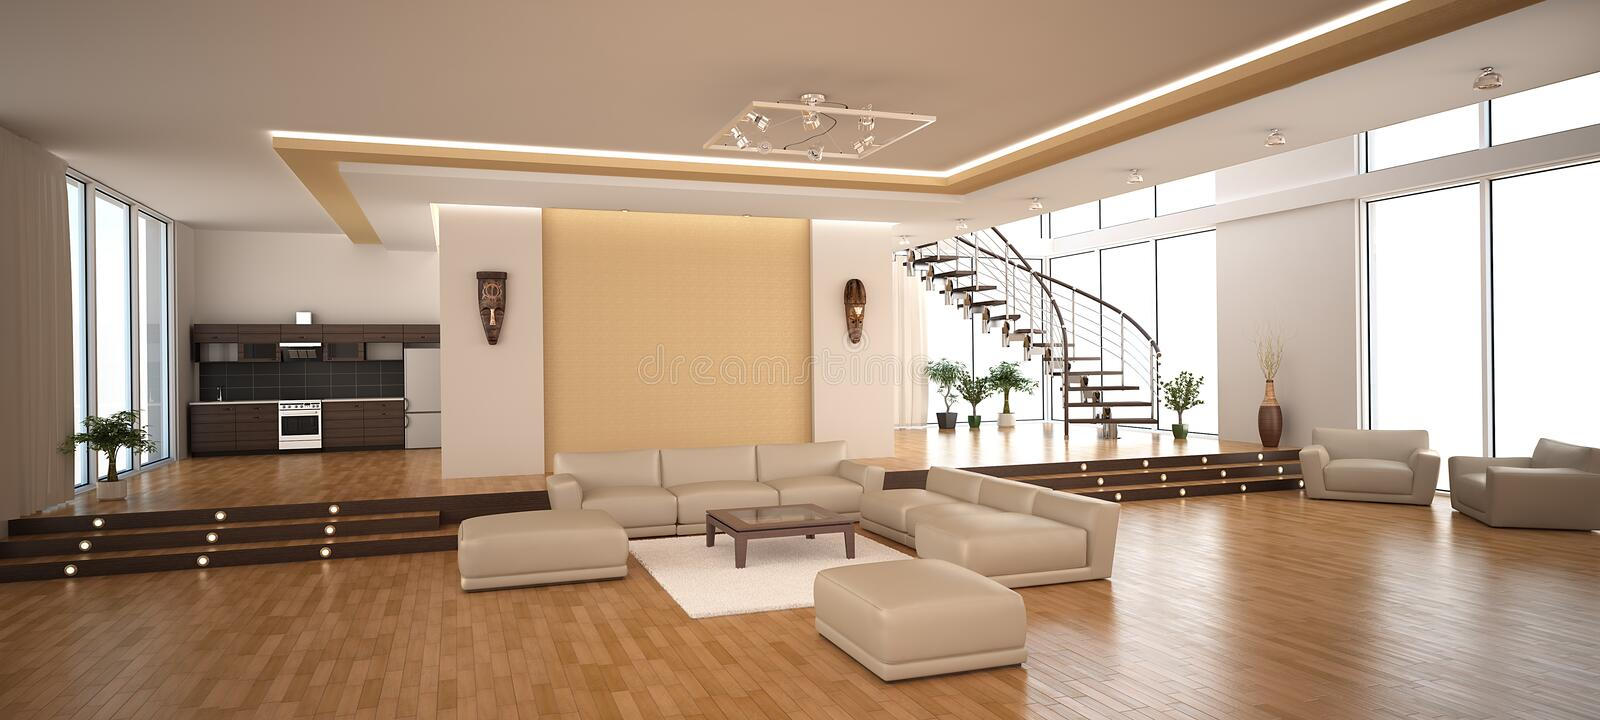 Modern interior of a drawing room vector illustration